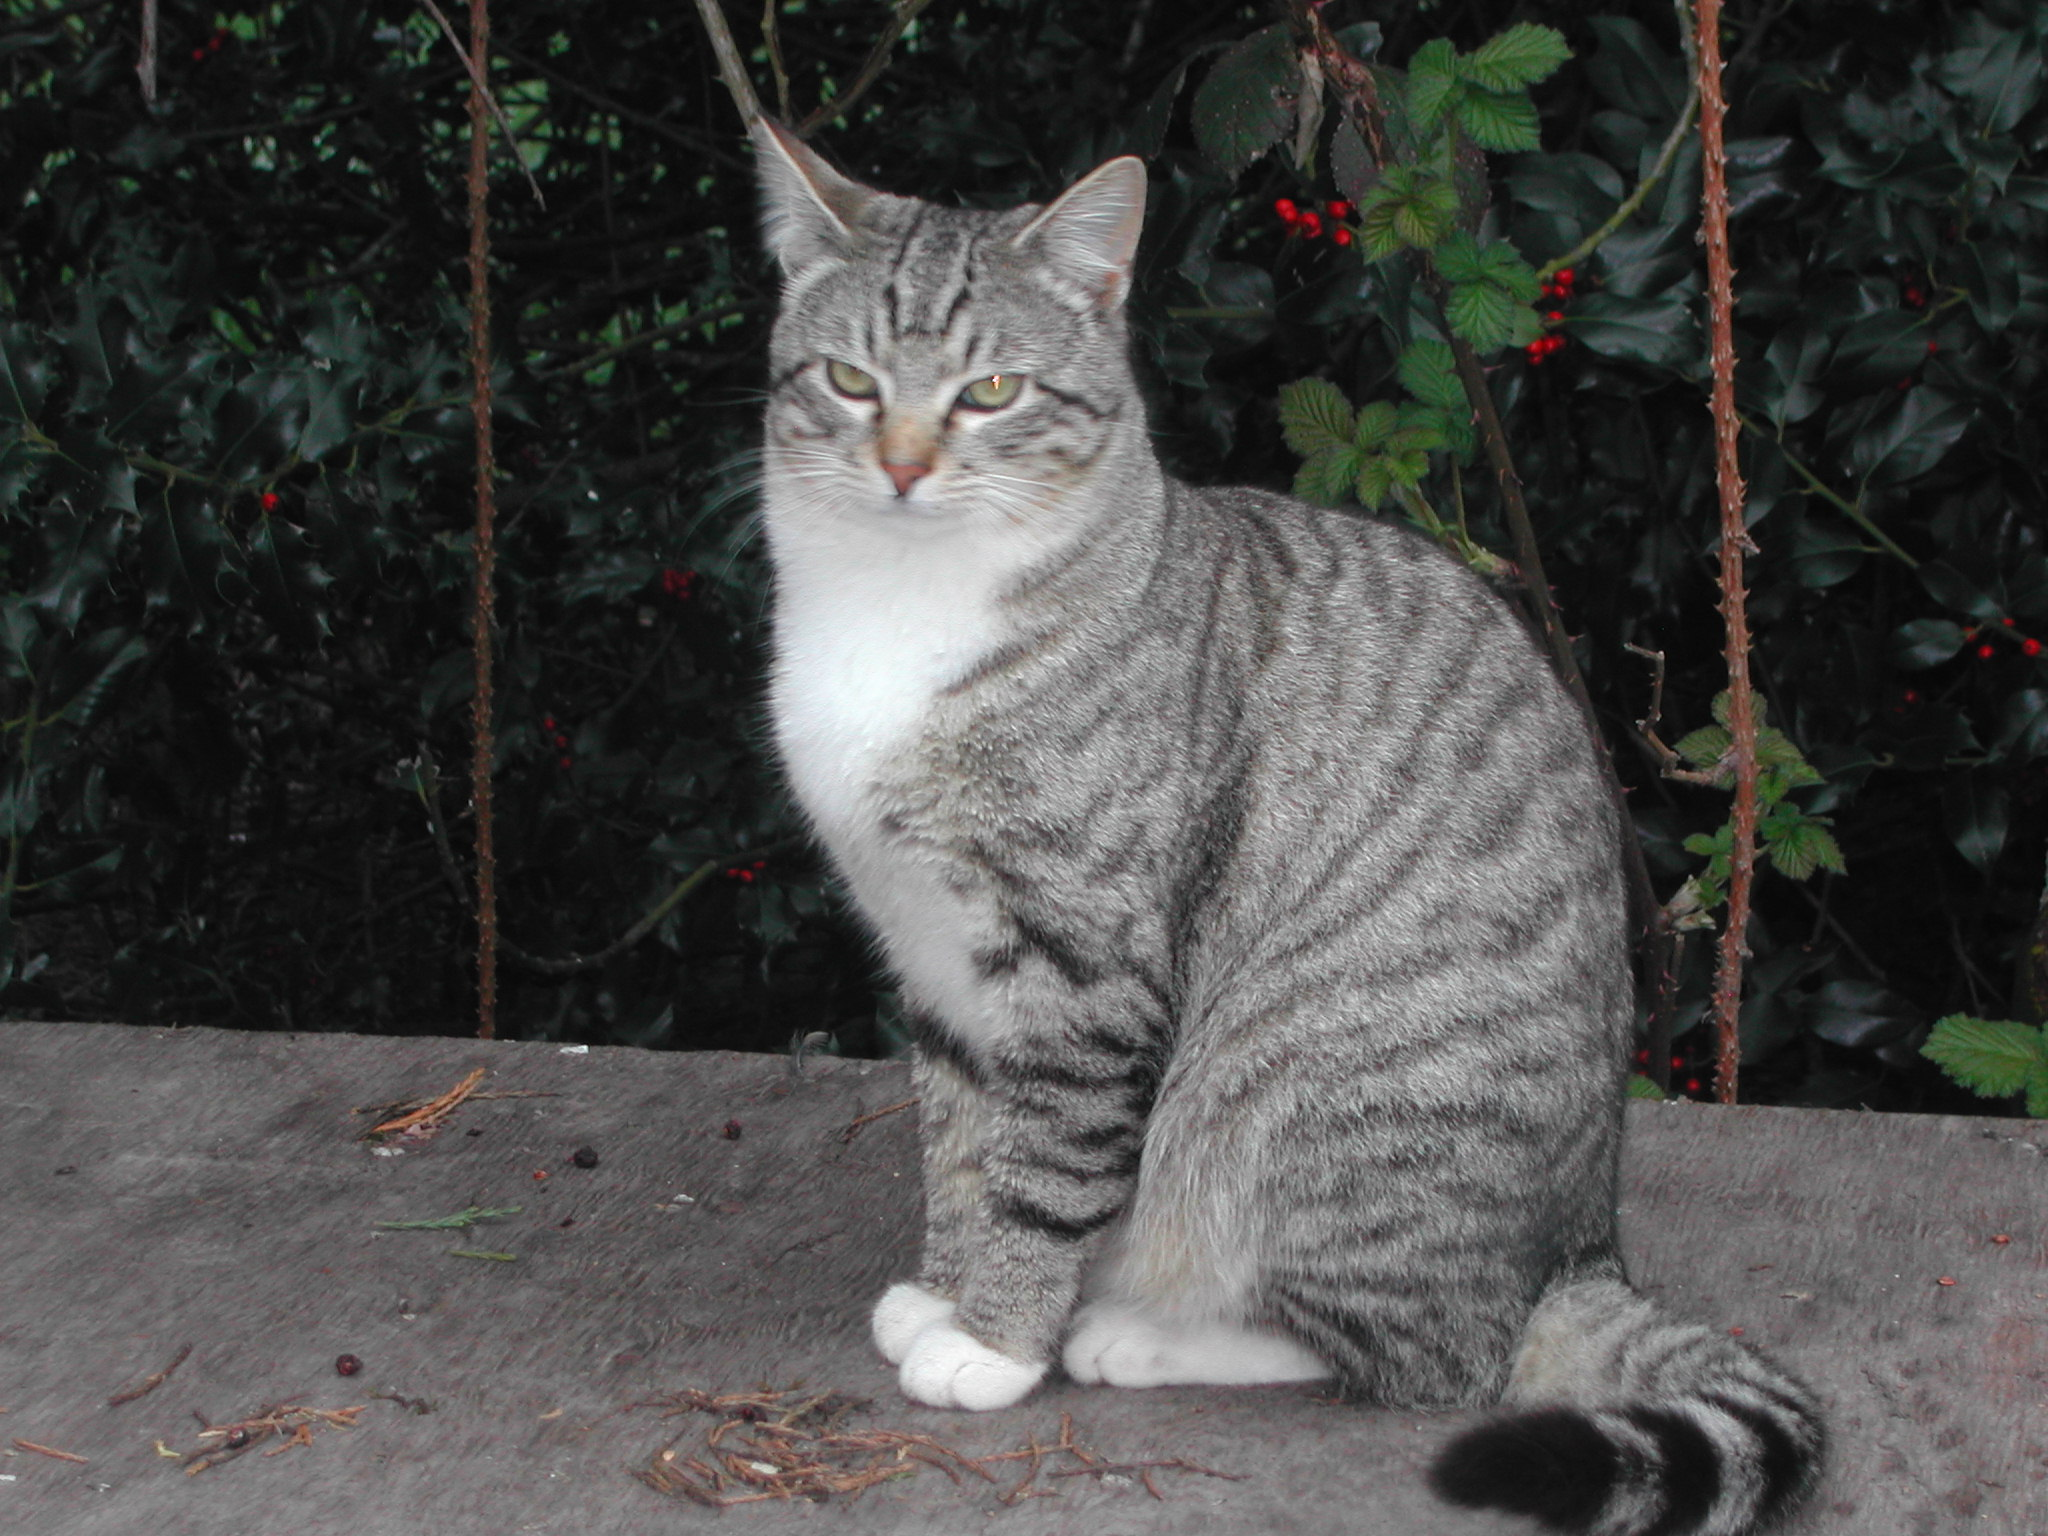 One of the feral kittens, almost 11 months old: Hubertus, named for the patron saint of hunting